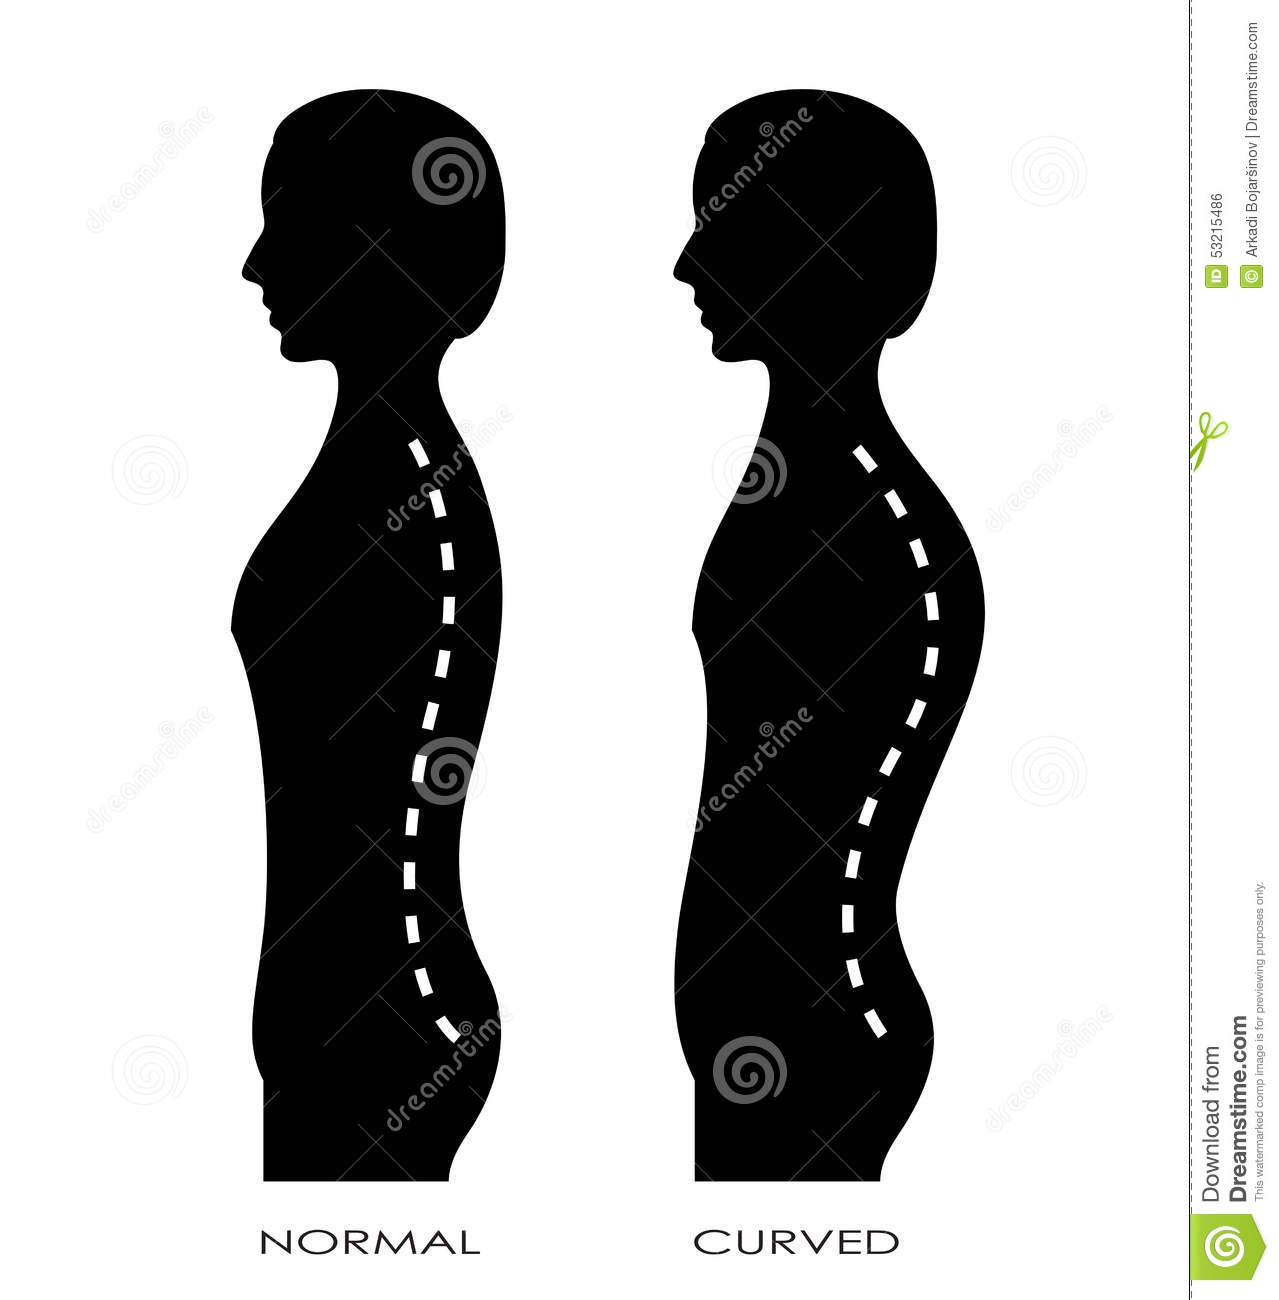 Spinal curvature stock vector  Illustration of plan, curving - 53215486